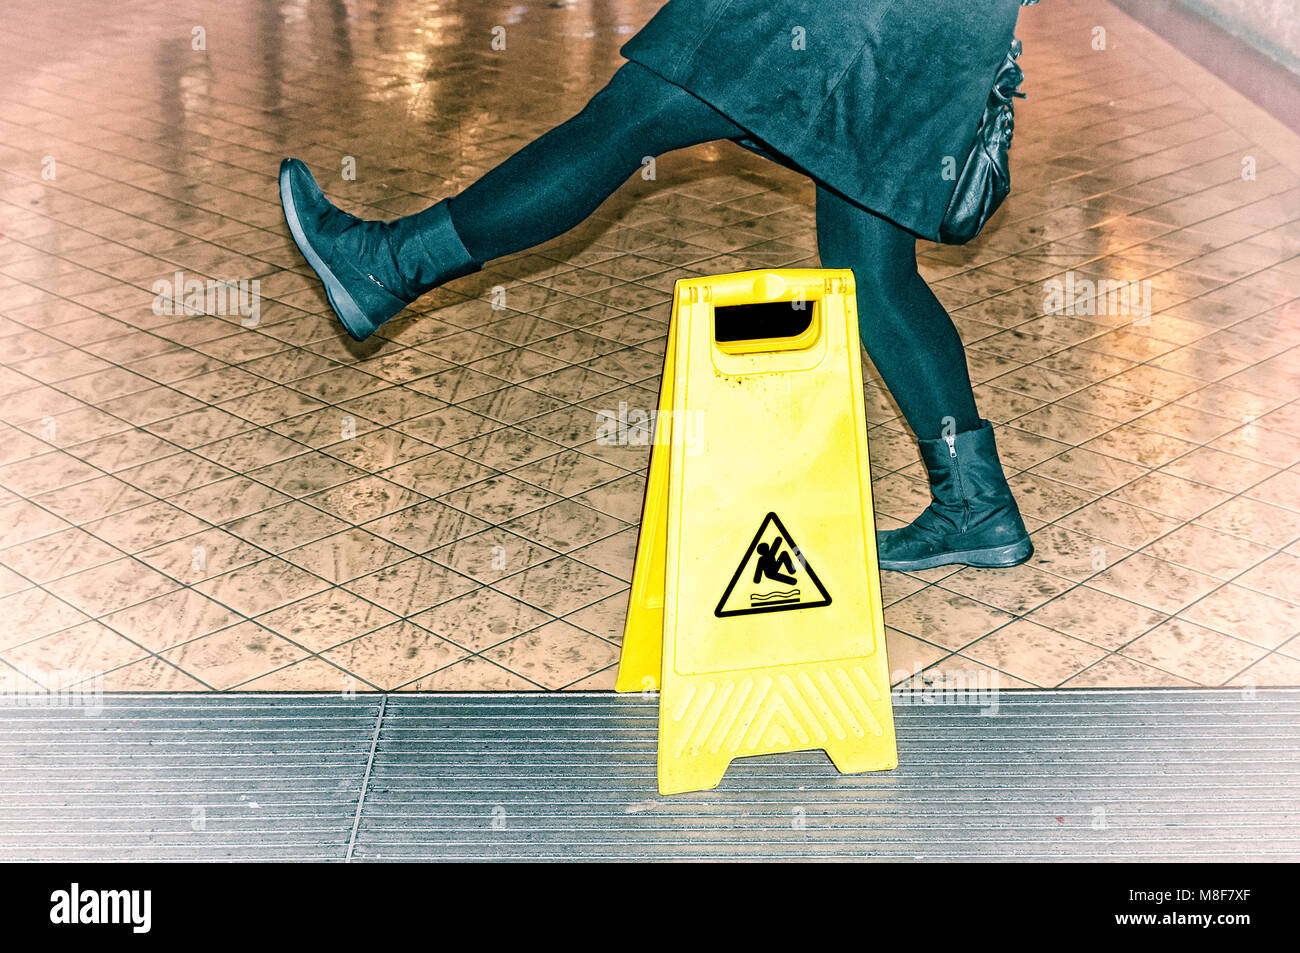 woman almost slips on a wet floor - Stock Image